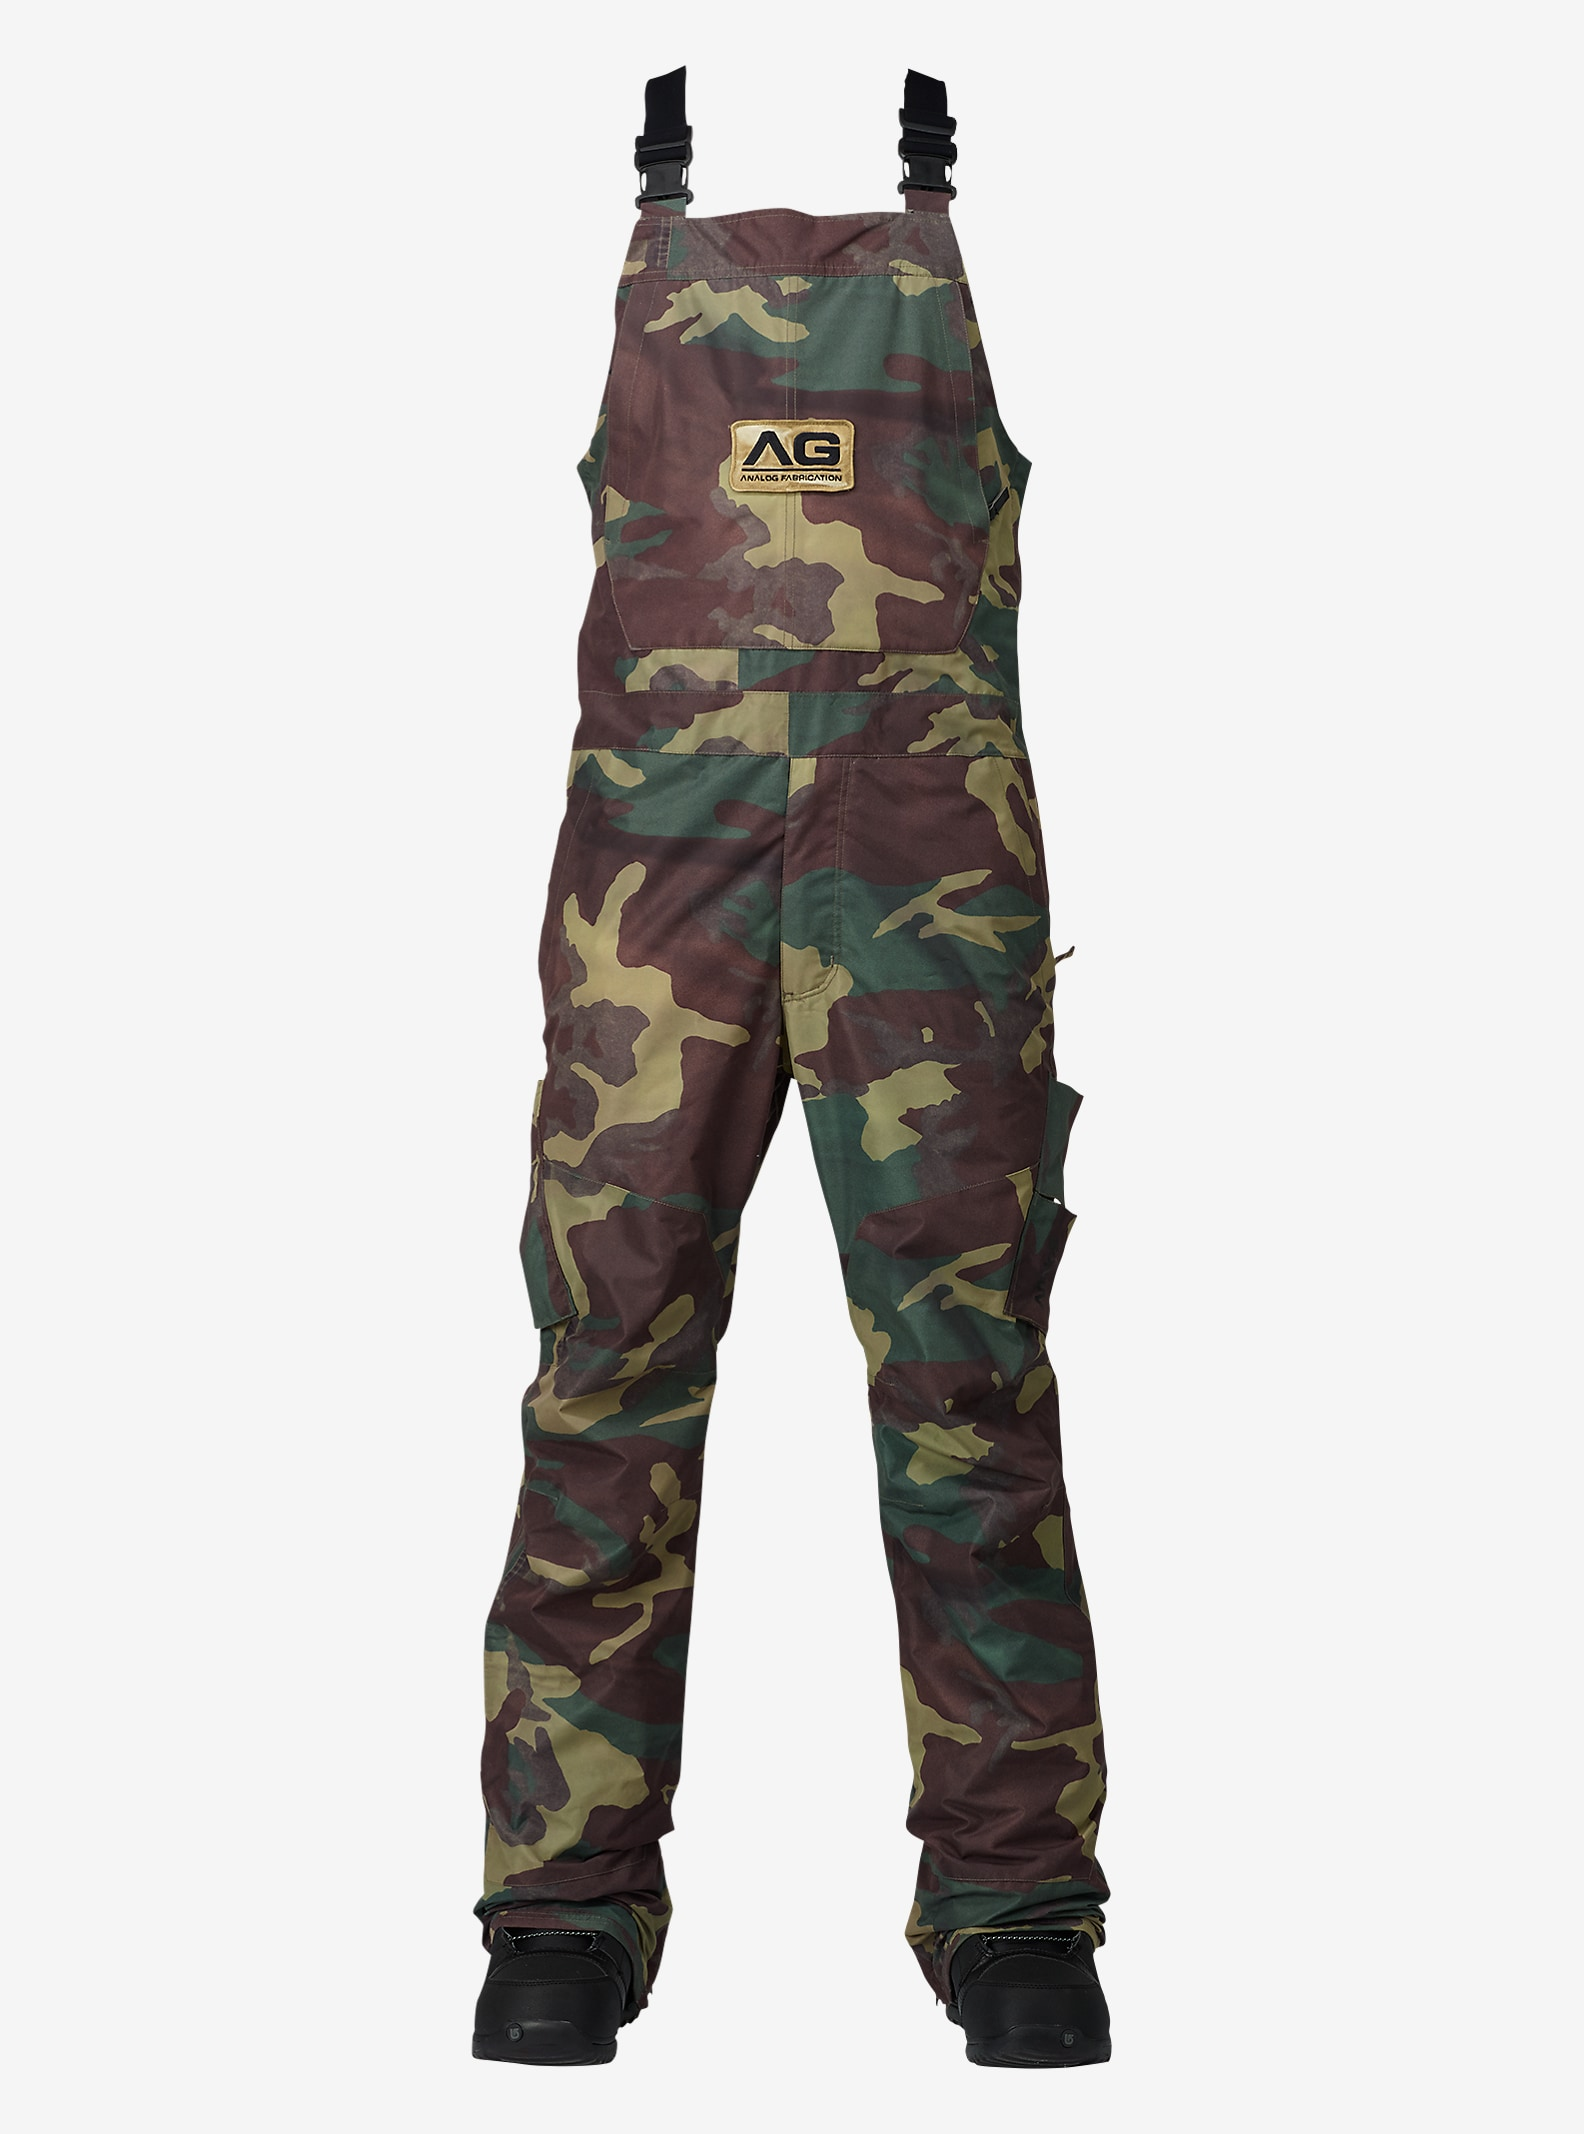 Analog Highmark Bib Pant shown in Surplus Camo